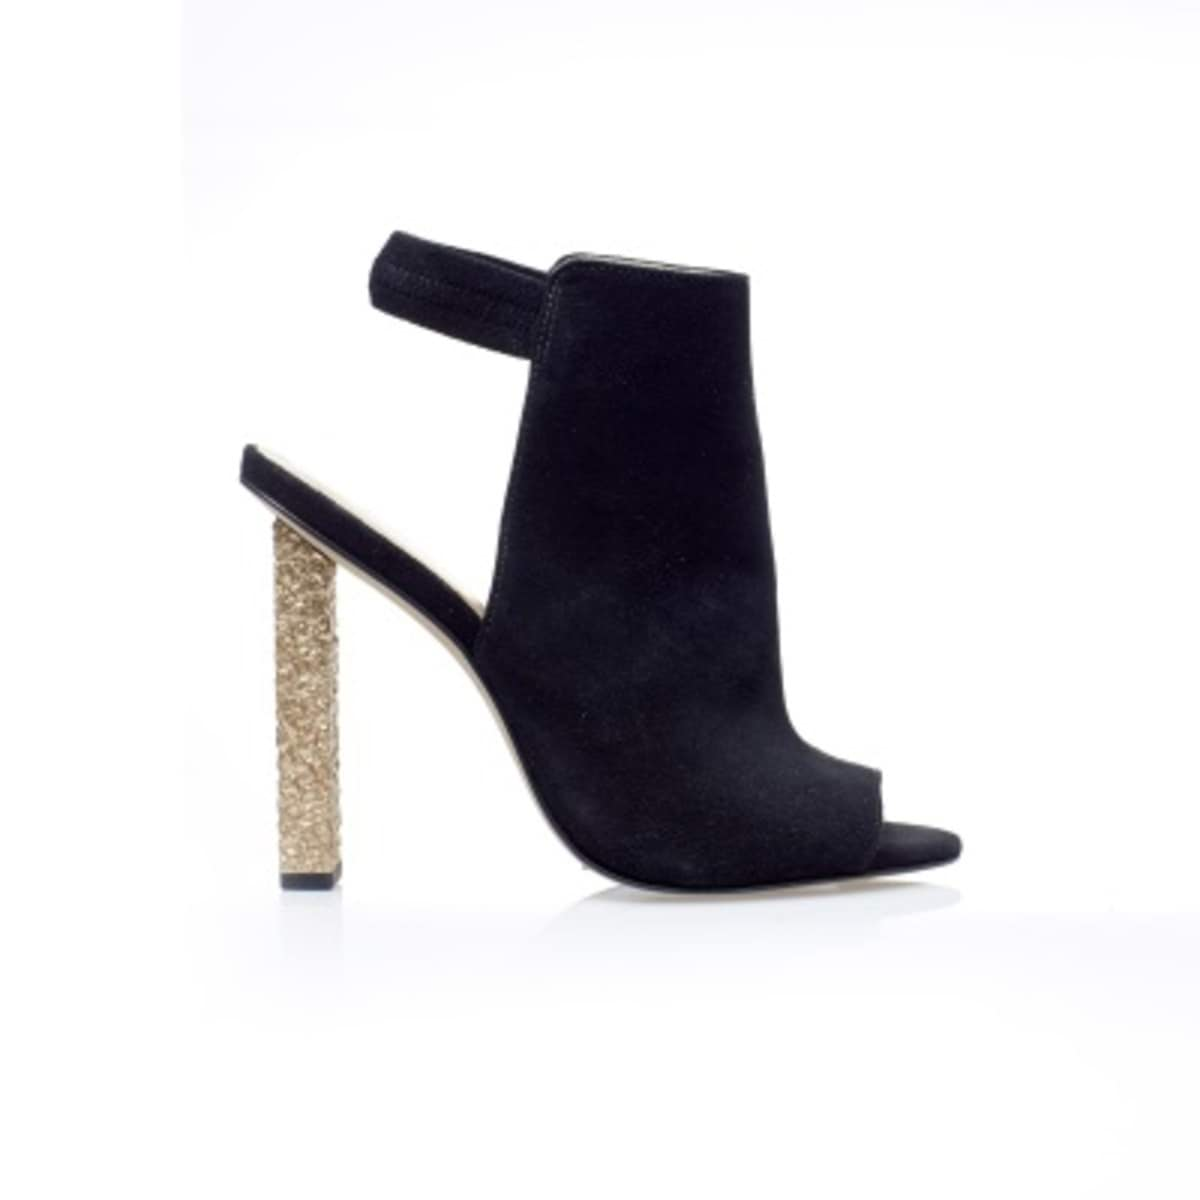 KURT GEIGER LONDON - Night Black AED1399